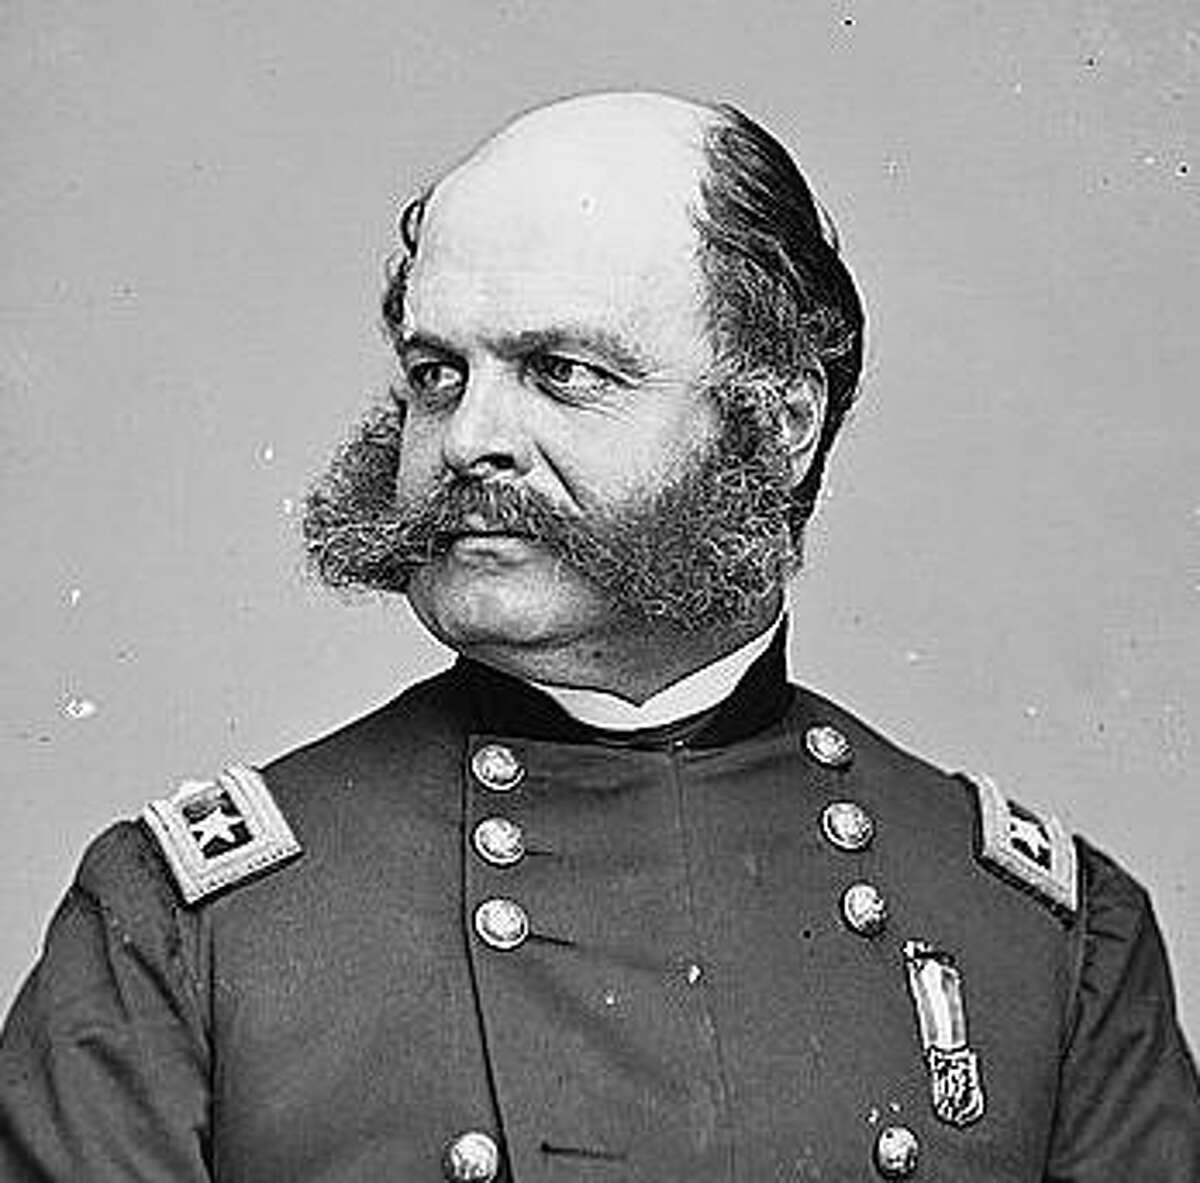 If he were alive today, Maj. Gen. Ambrose Burnside would be a poor candidate for an N95 mask.